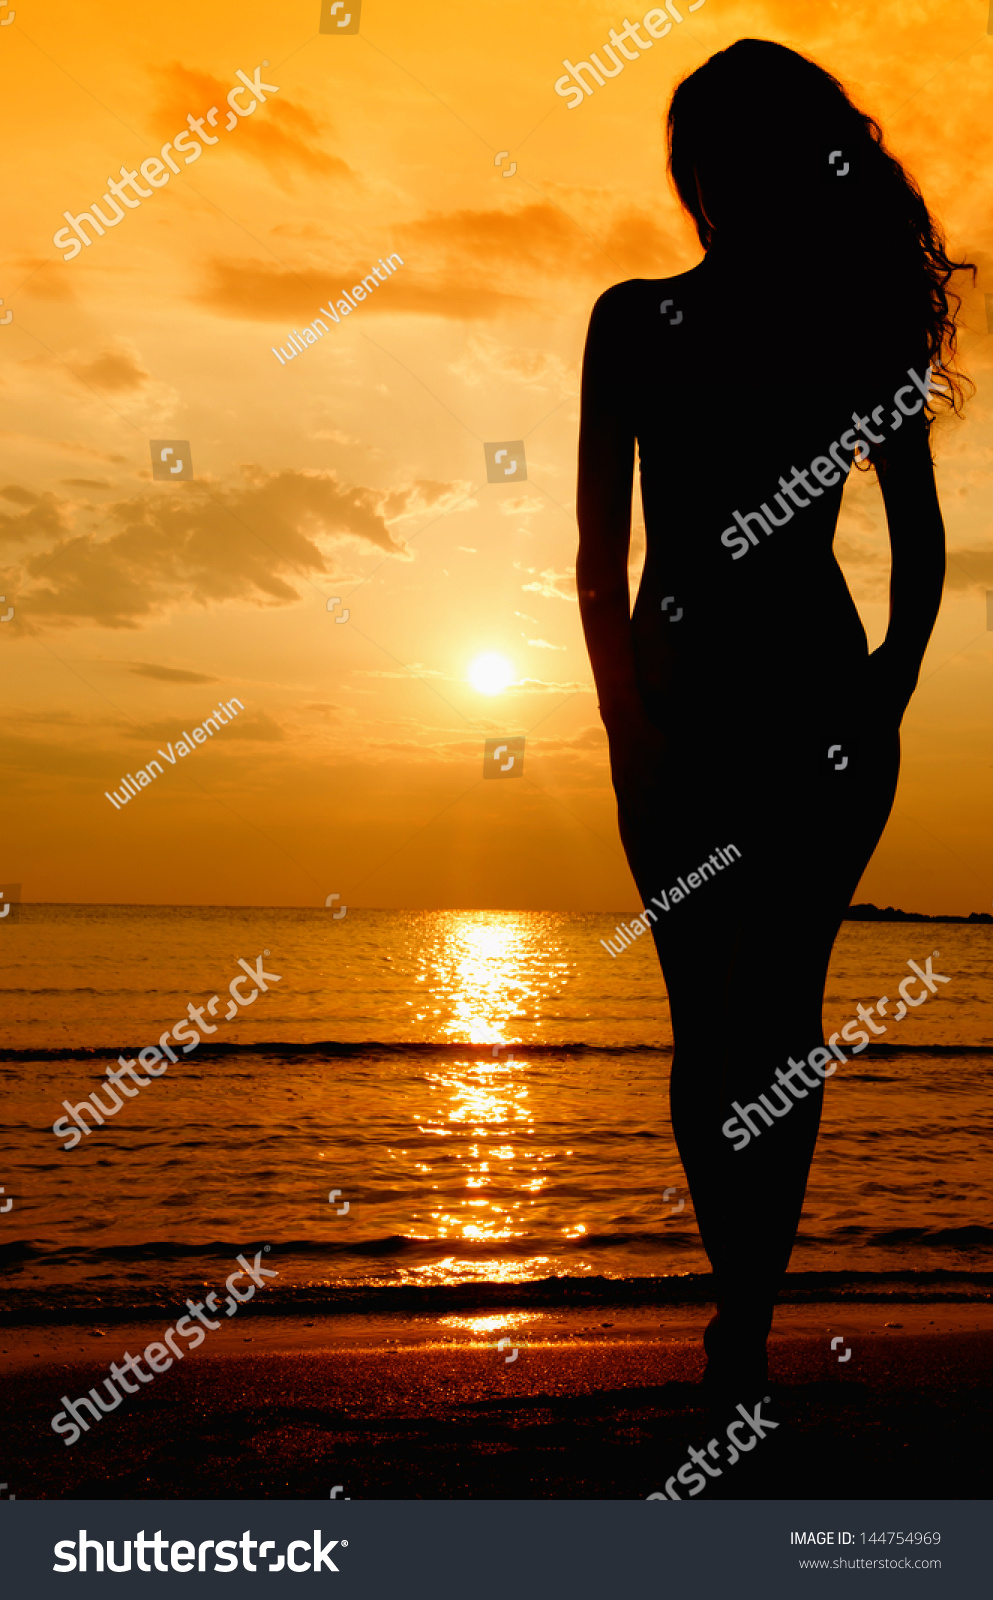 sunrise beach women Meet sunrise beach singles online & chat in the forums dhu is a 100% free dating site to find personals & casual encounters in sunrise beach.